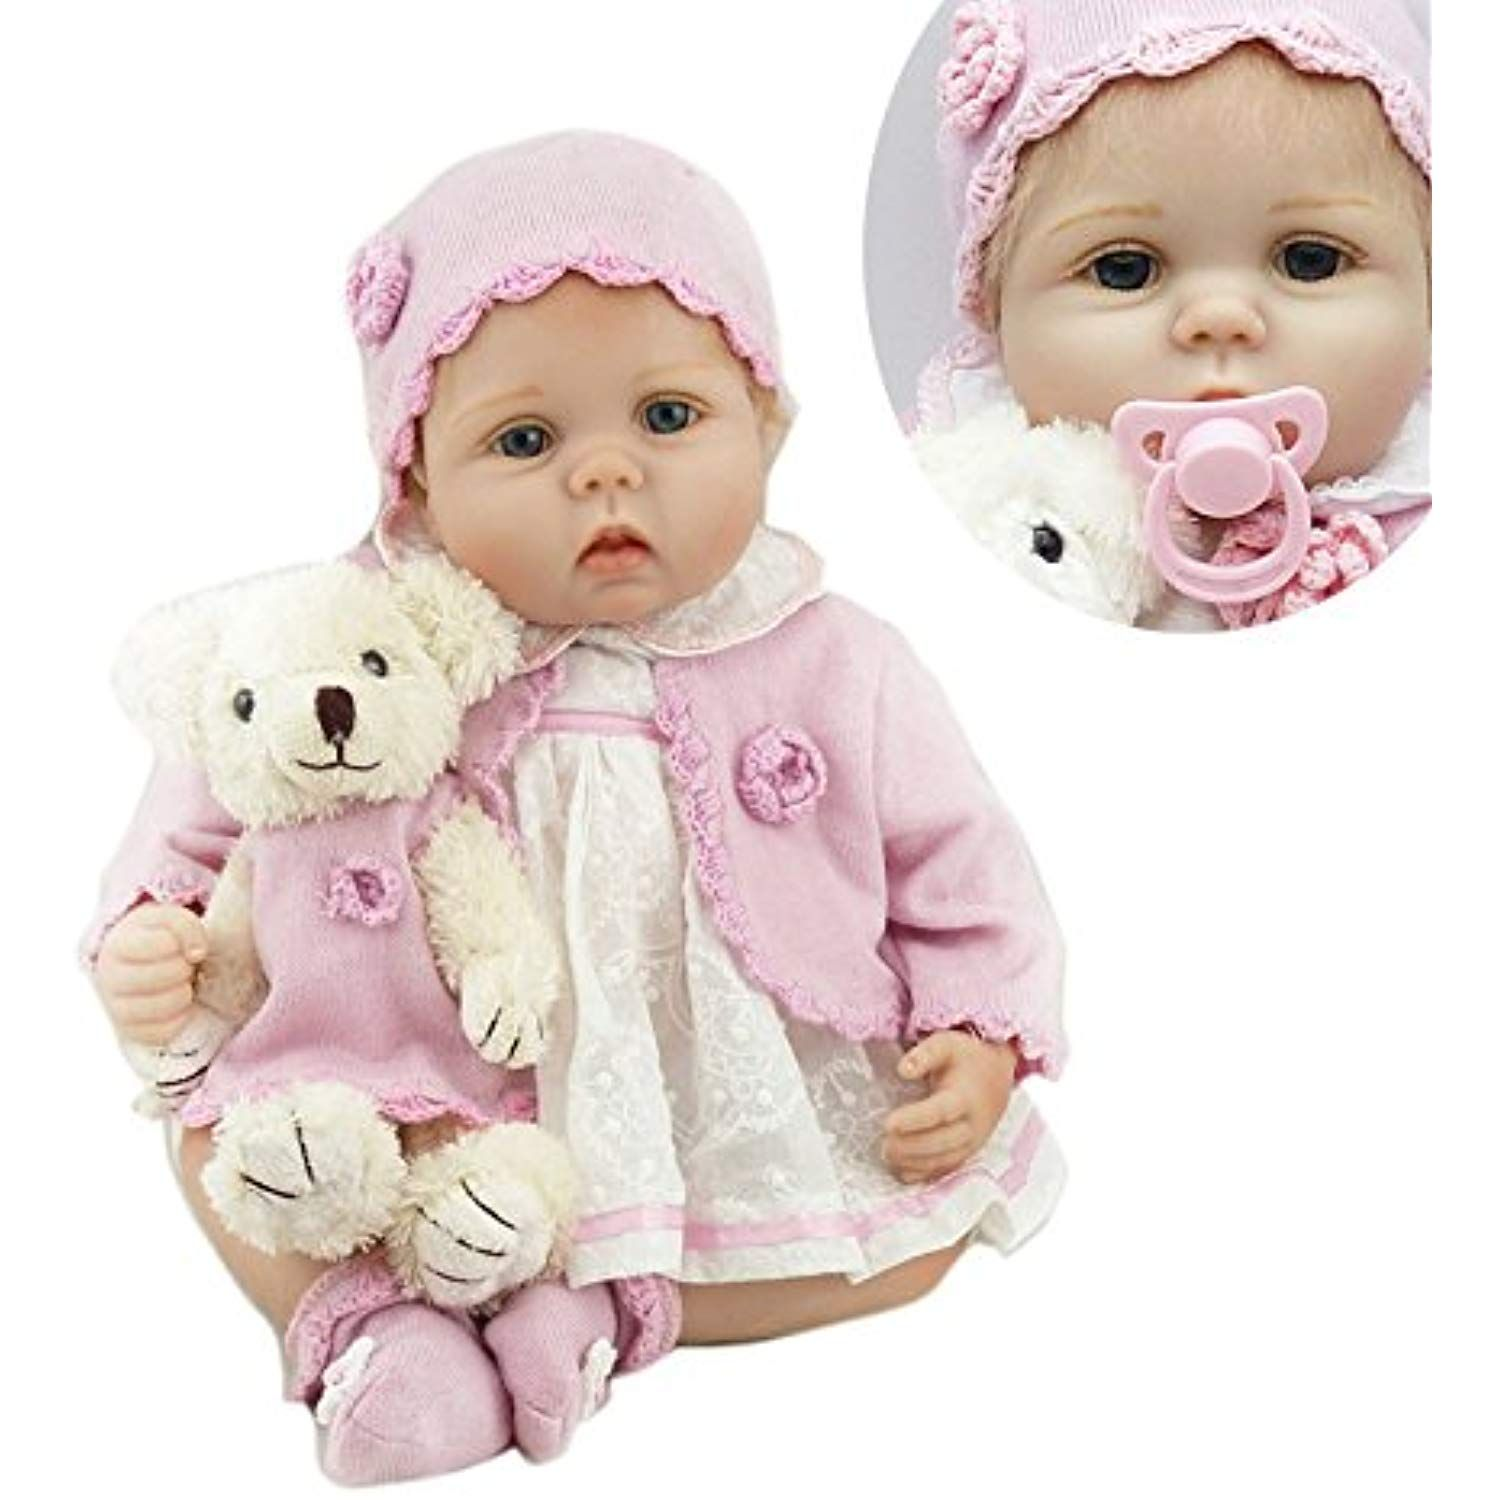 Pinky Lifelike 22 Inch 55cm Soft Silicone Handmade Reborn Baby Girl Dolls Realistic Looking Newborn Baby Doll Toddler Cute Birthday Gift